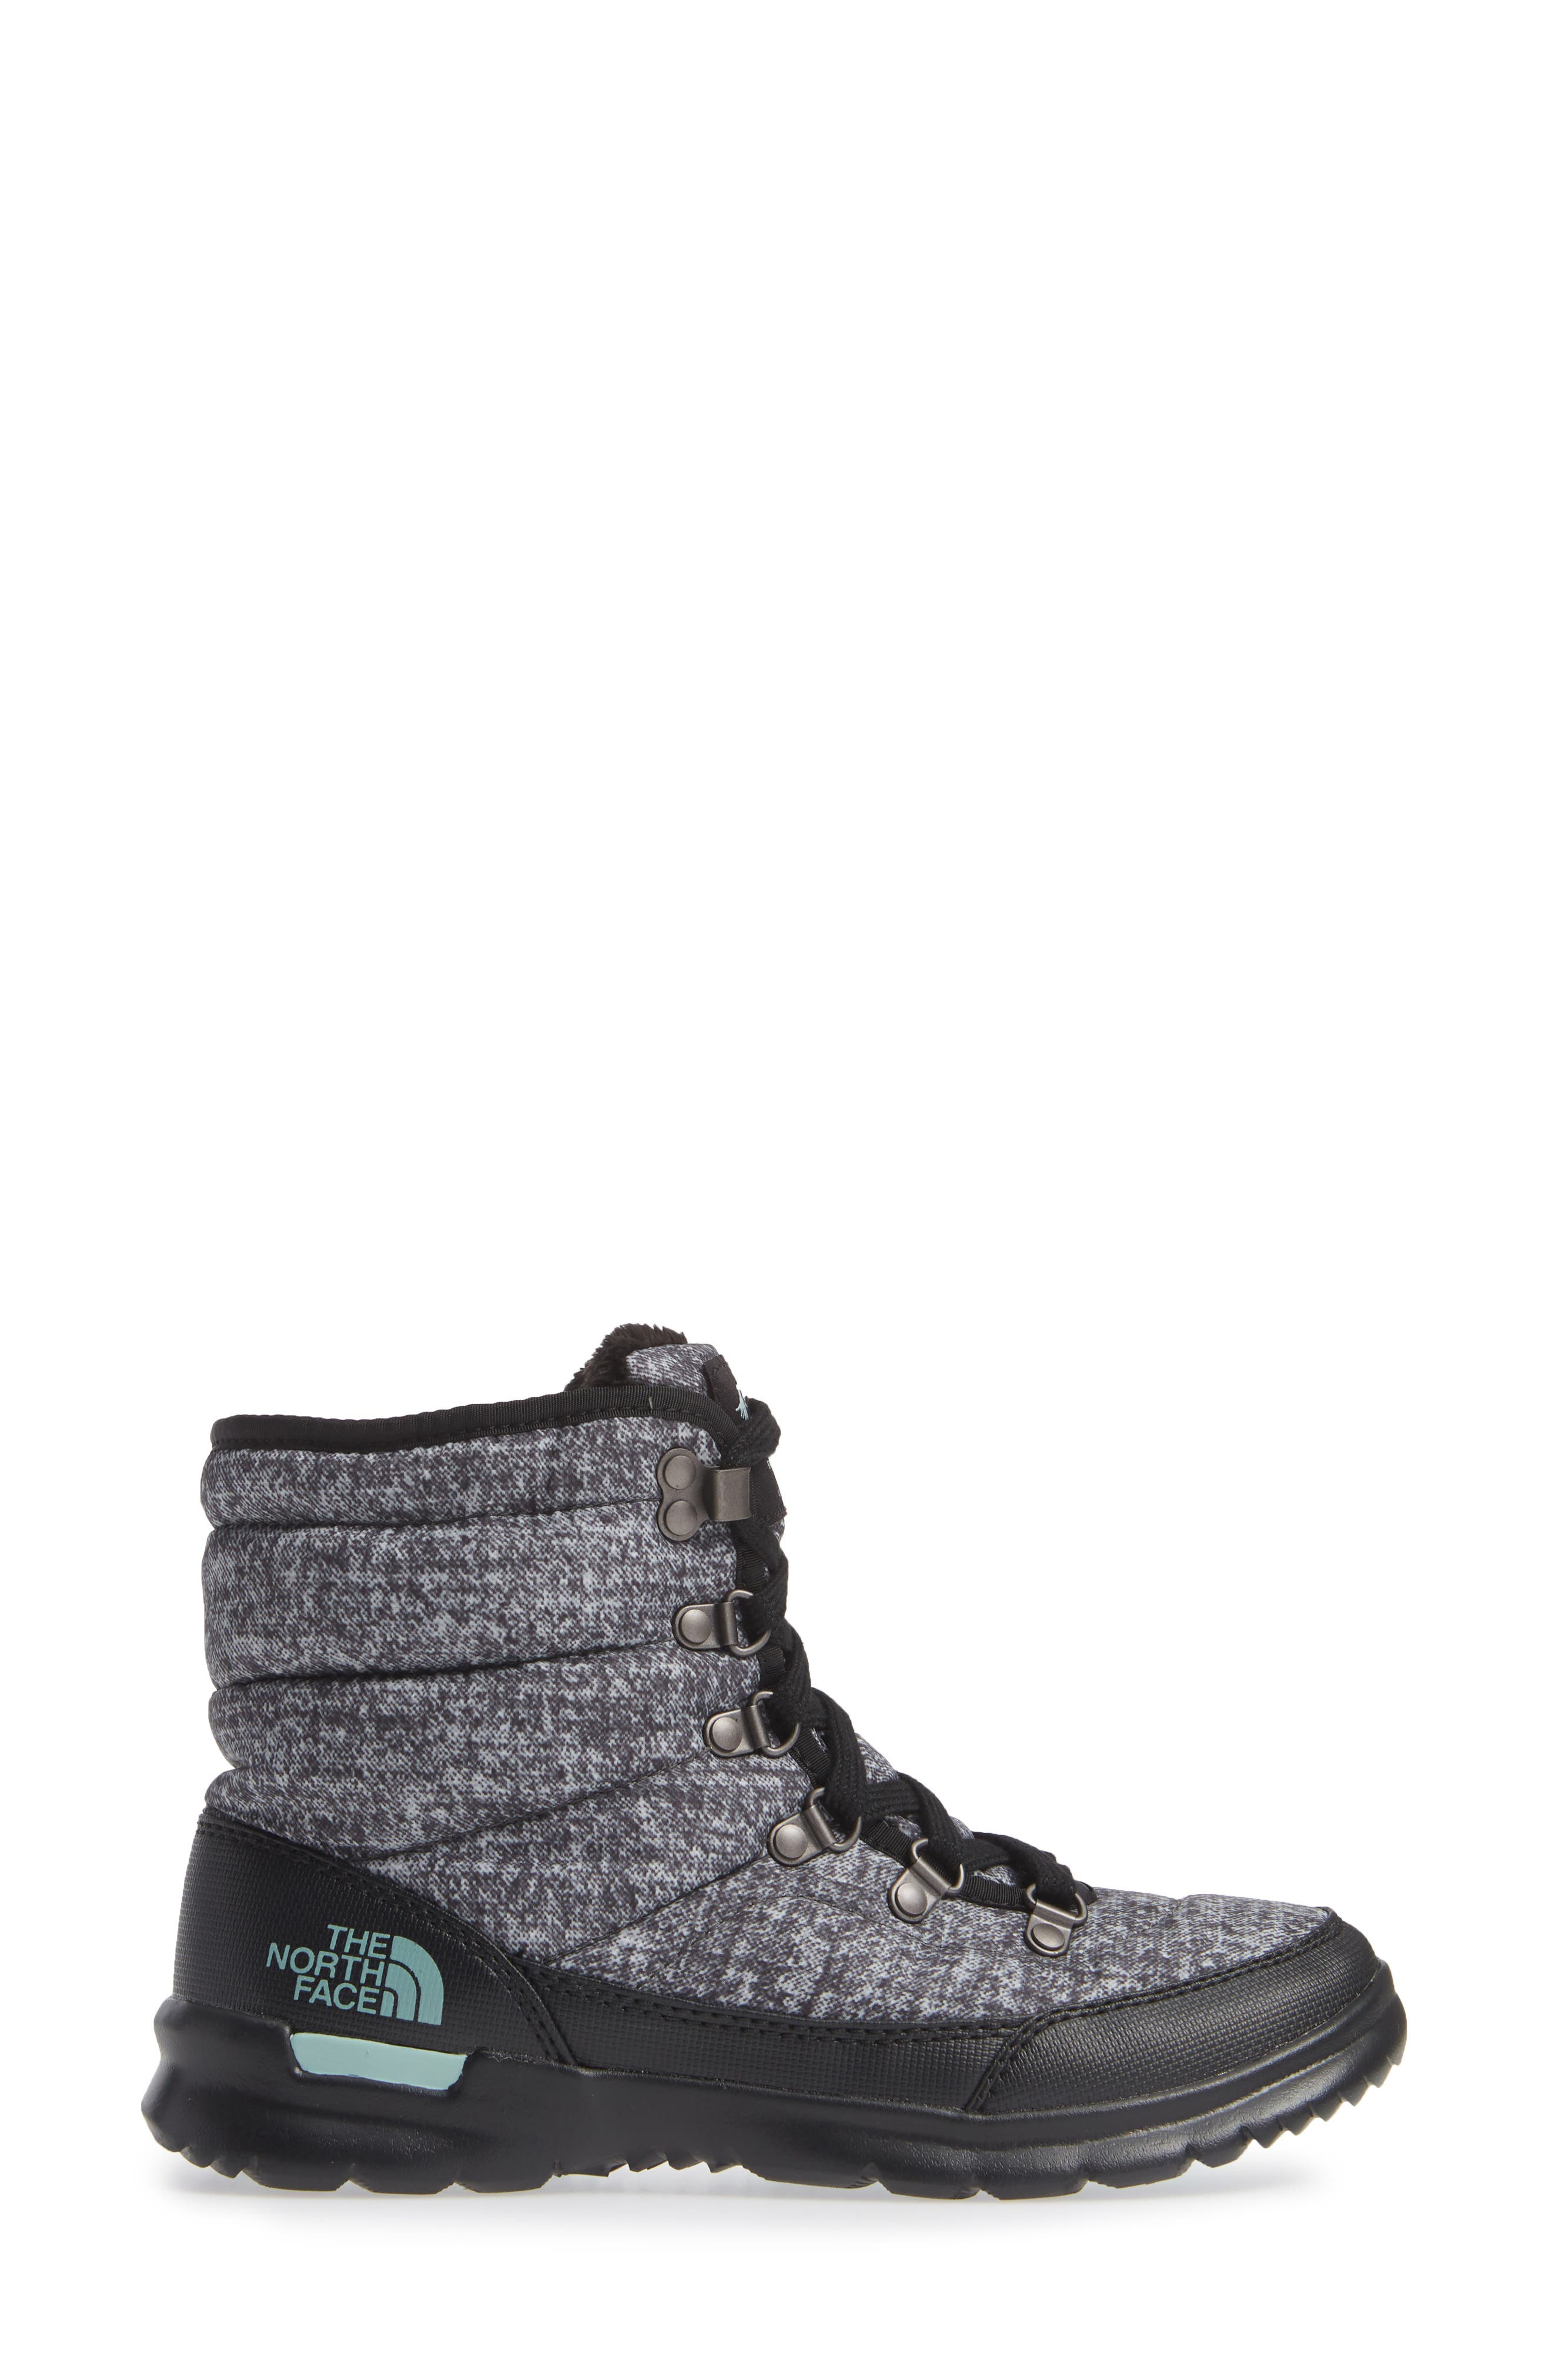 Lace II ThermoBall<sup>™</sup> Insulated Winter Boot,                             Alternate thumbnail 3, color,                             HOUNDS TOOTH PRINT/ BLUE HAZE